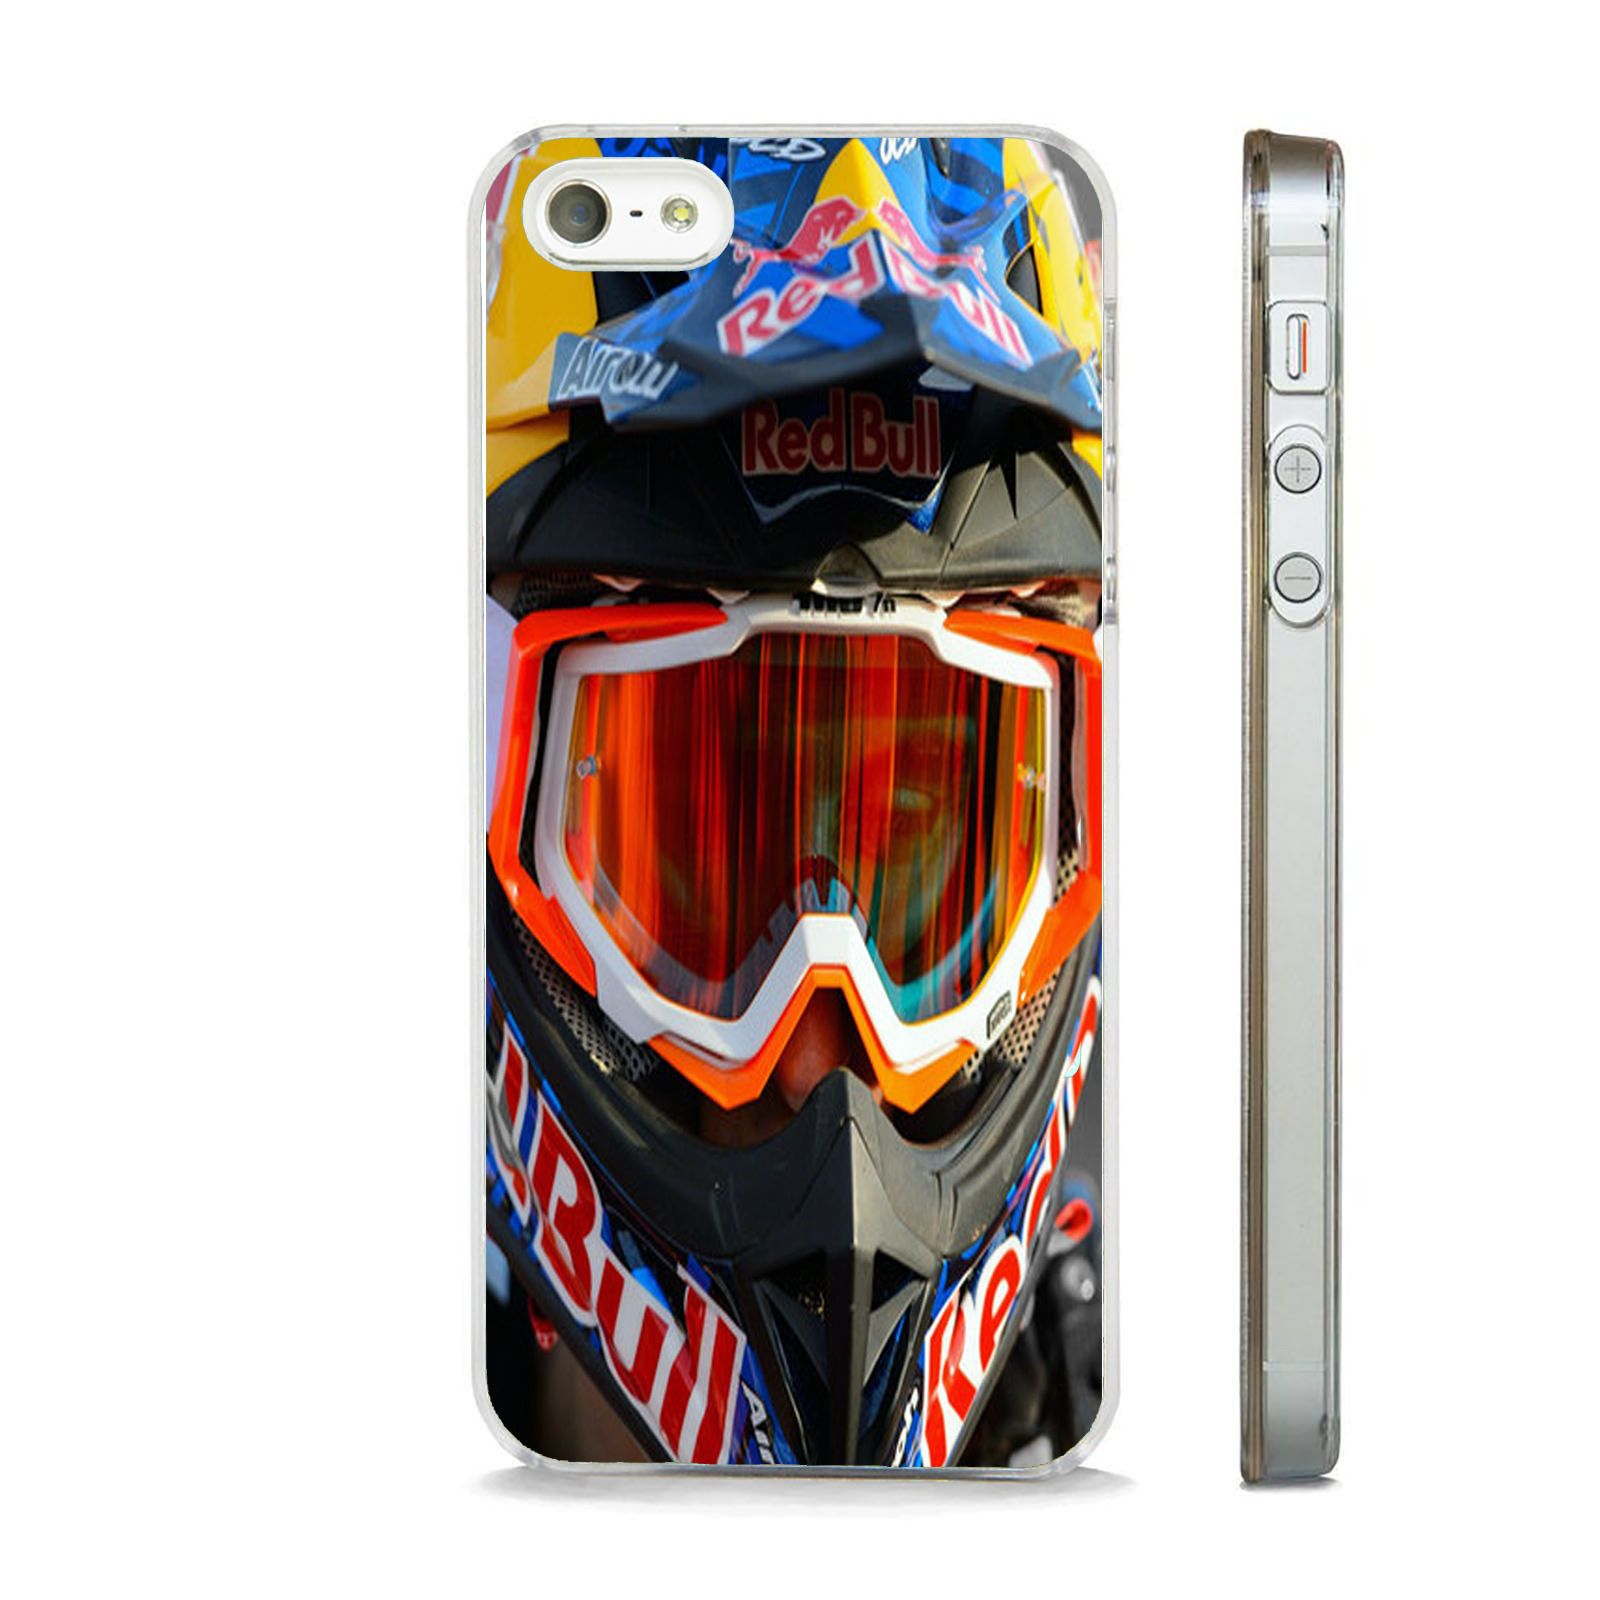 online store 1c411 6d2dc Details about RED BULL MOTOCROSS CLEAR PHONE CASE FITS IPHONE 4 5 5S ...